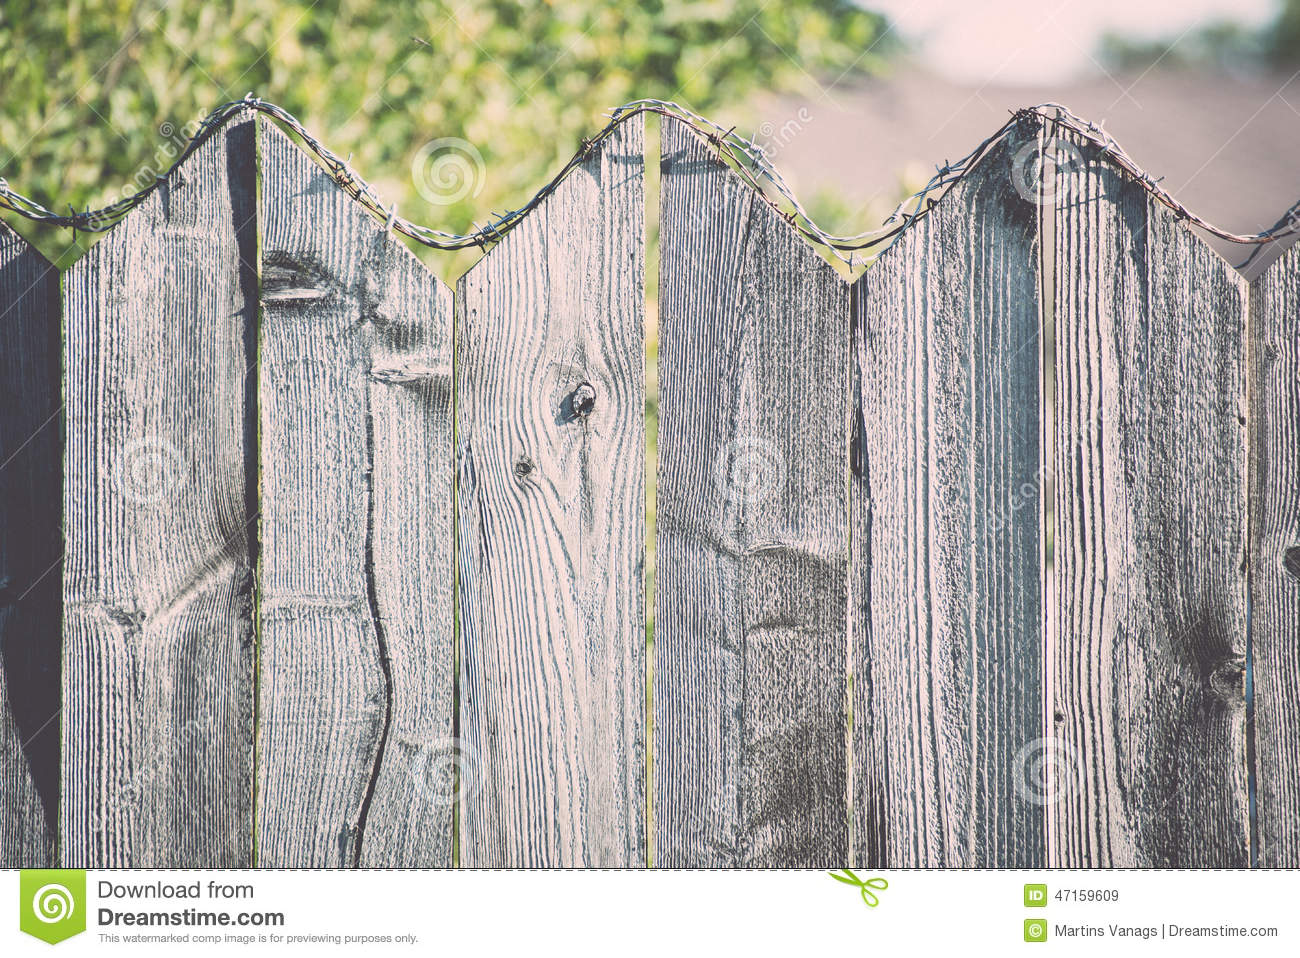 Old wooden fence with barbed wire on top vintage stock photo barbed fence old wire wooden baanklon Choice Image